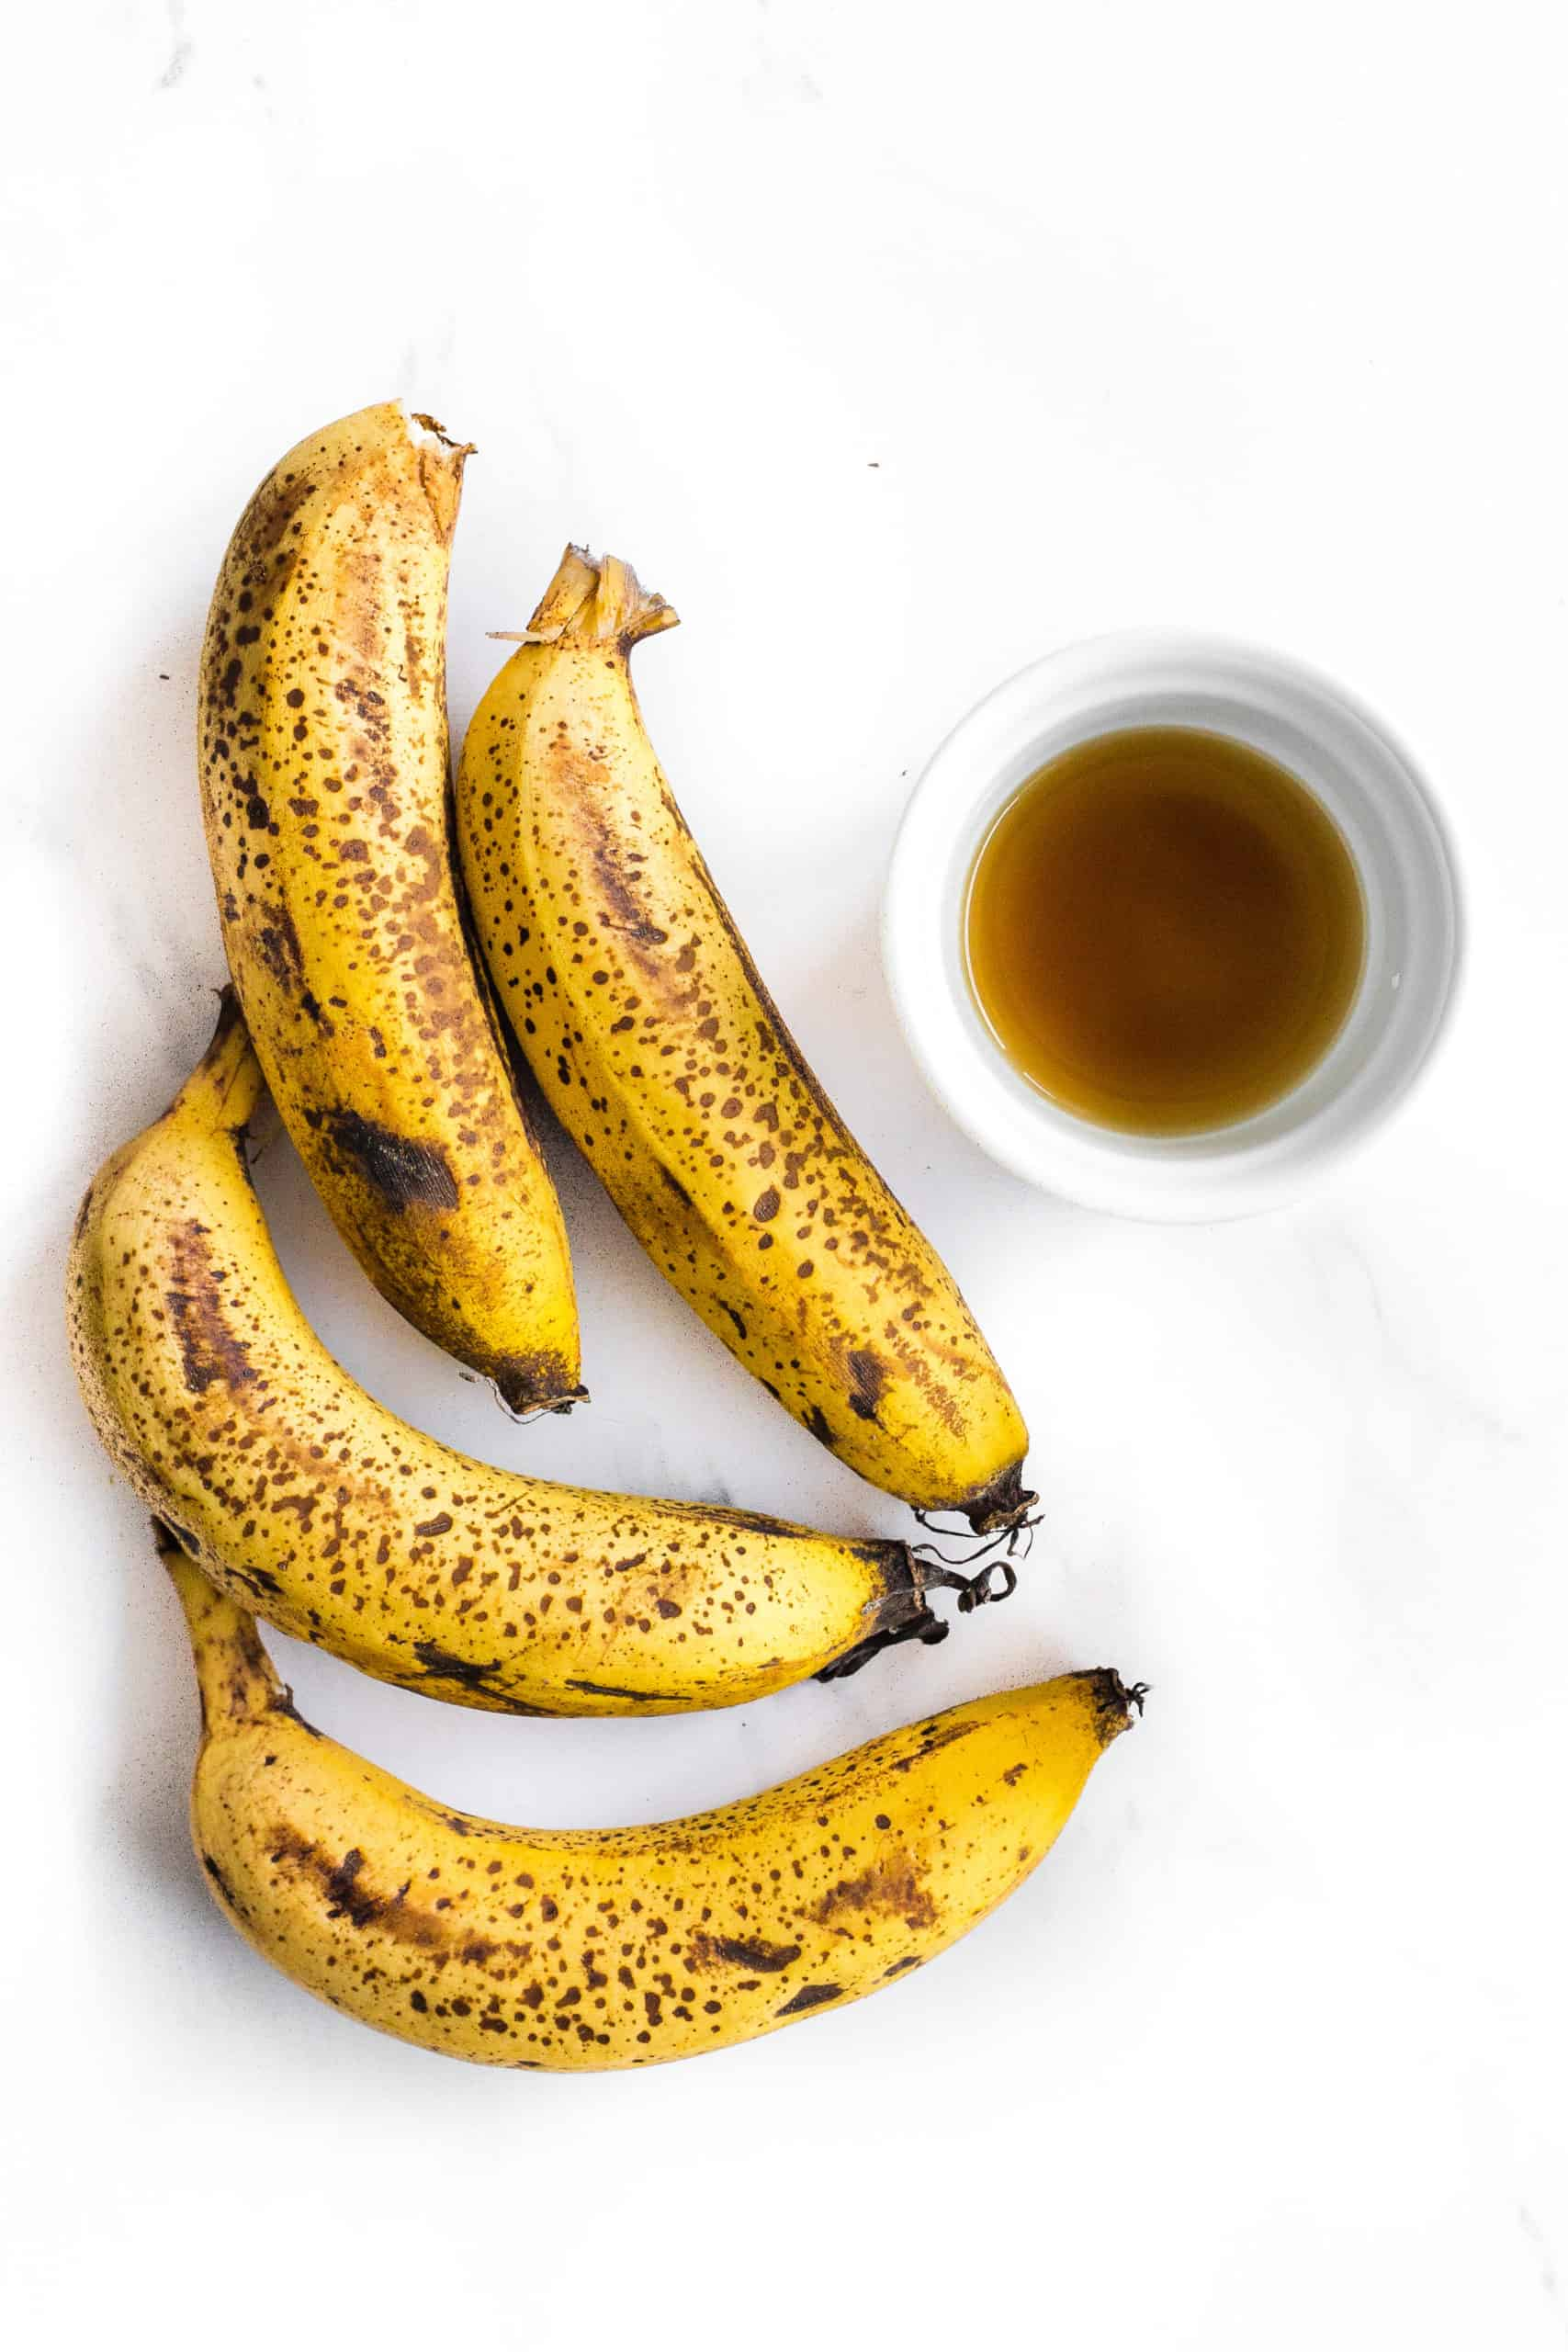 Bananas and vanilla extract on a marble board